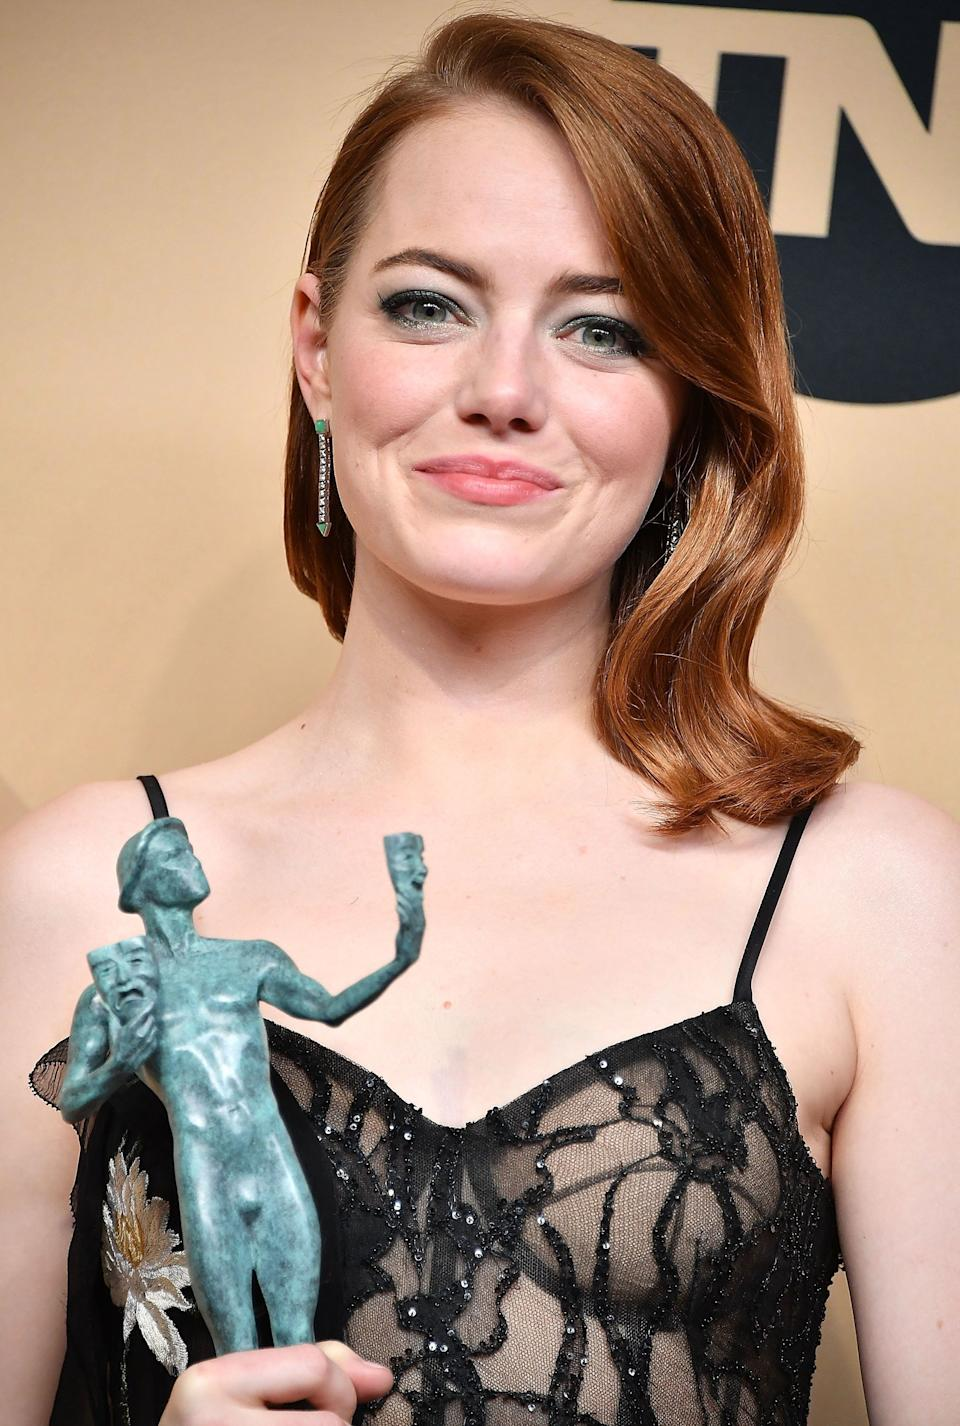 """Emma Stone also addressed the ban duringthe SAG Awards.<br /><br />""""We have to speak up. Staying silent only helps the oppressor, not the victim. Right now I hope that people seeing things that are being done that are unconstitutional and inhumane would say something."""""""